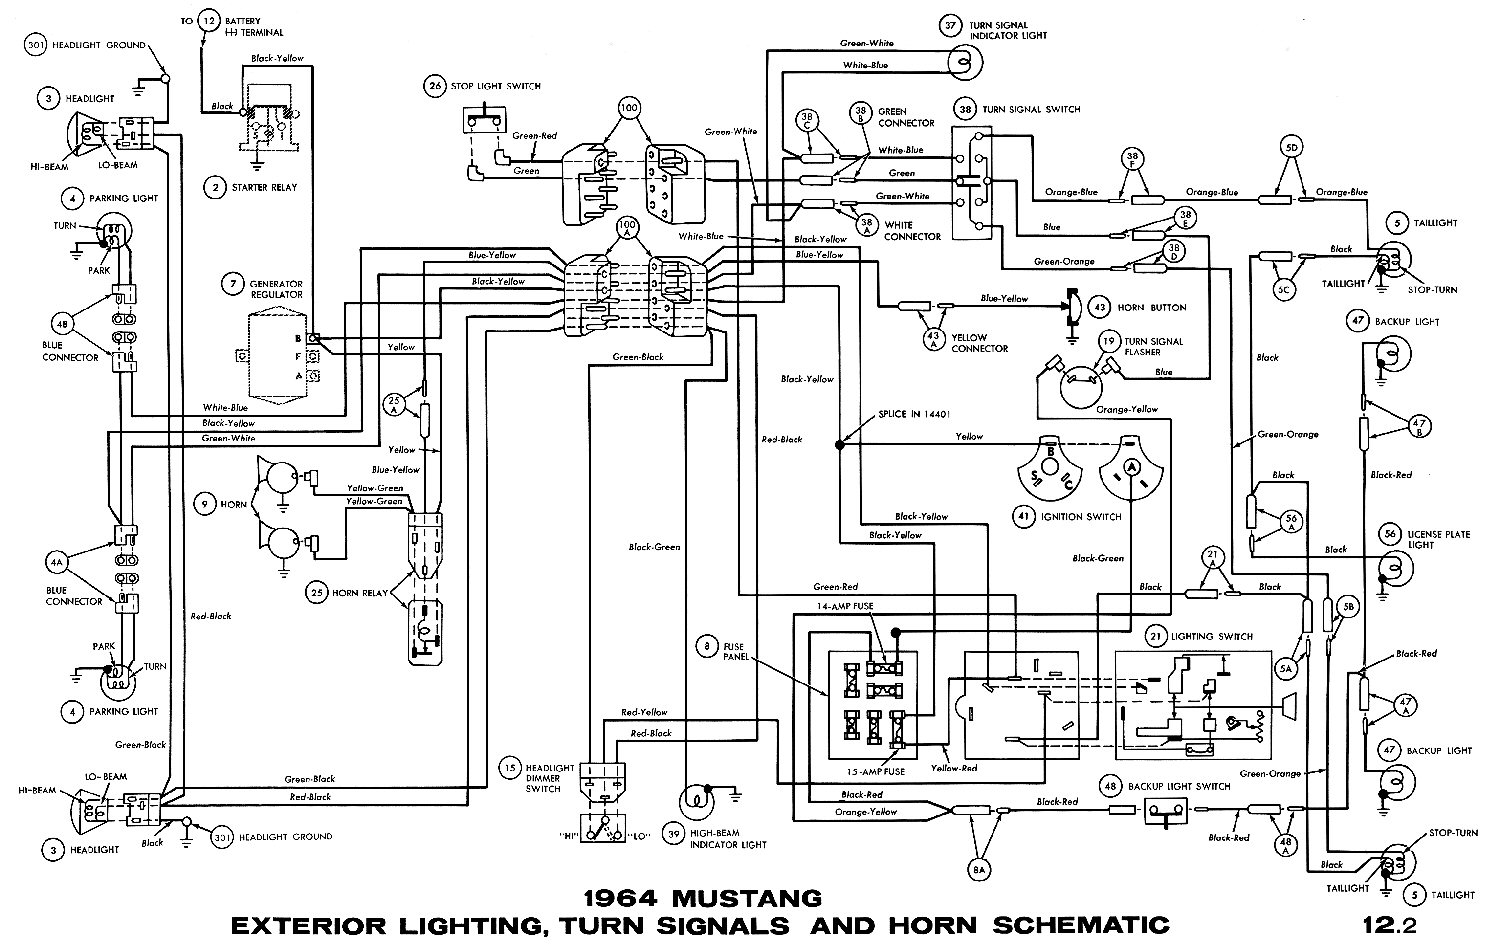 1964 Mustang Wiring Diagrams Average Joe Restoration 1993 F250 Headlight Switch Diagram Headlamps